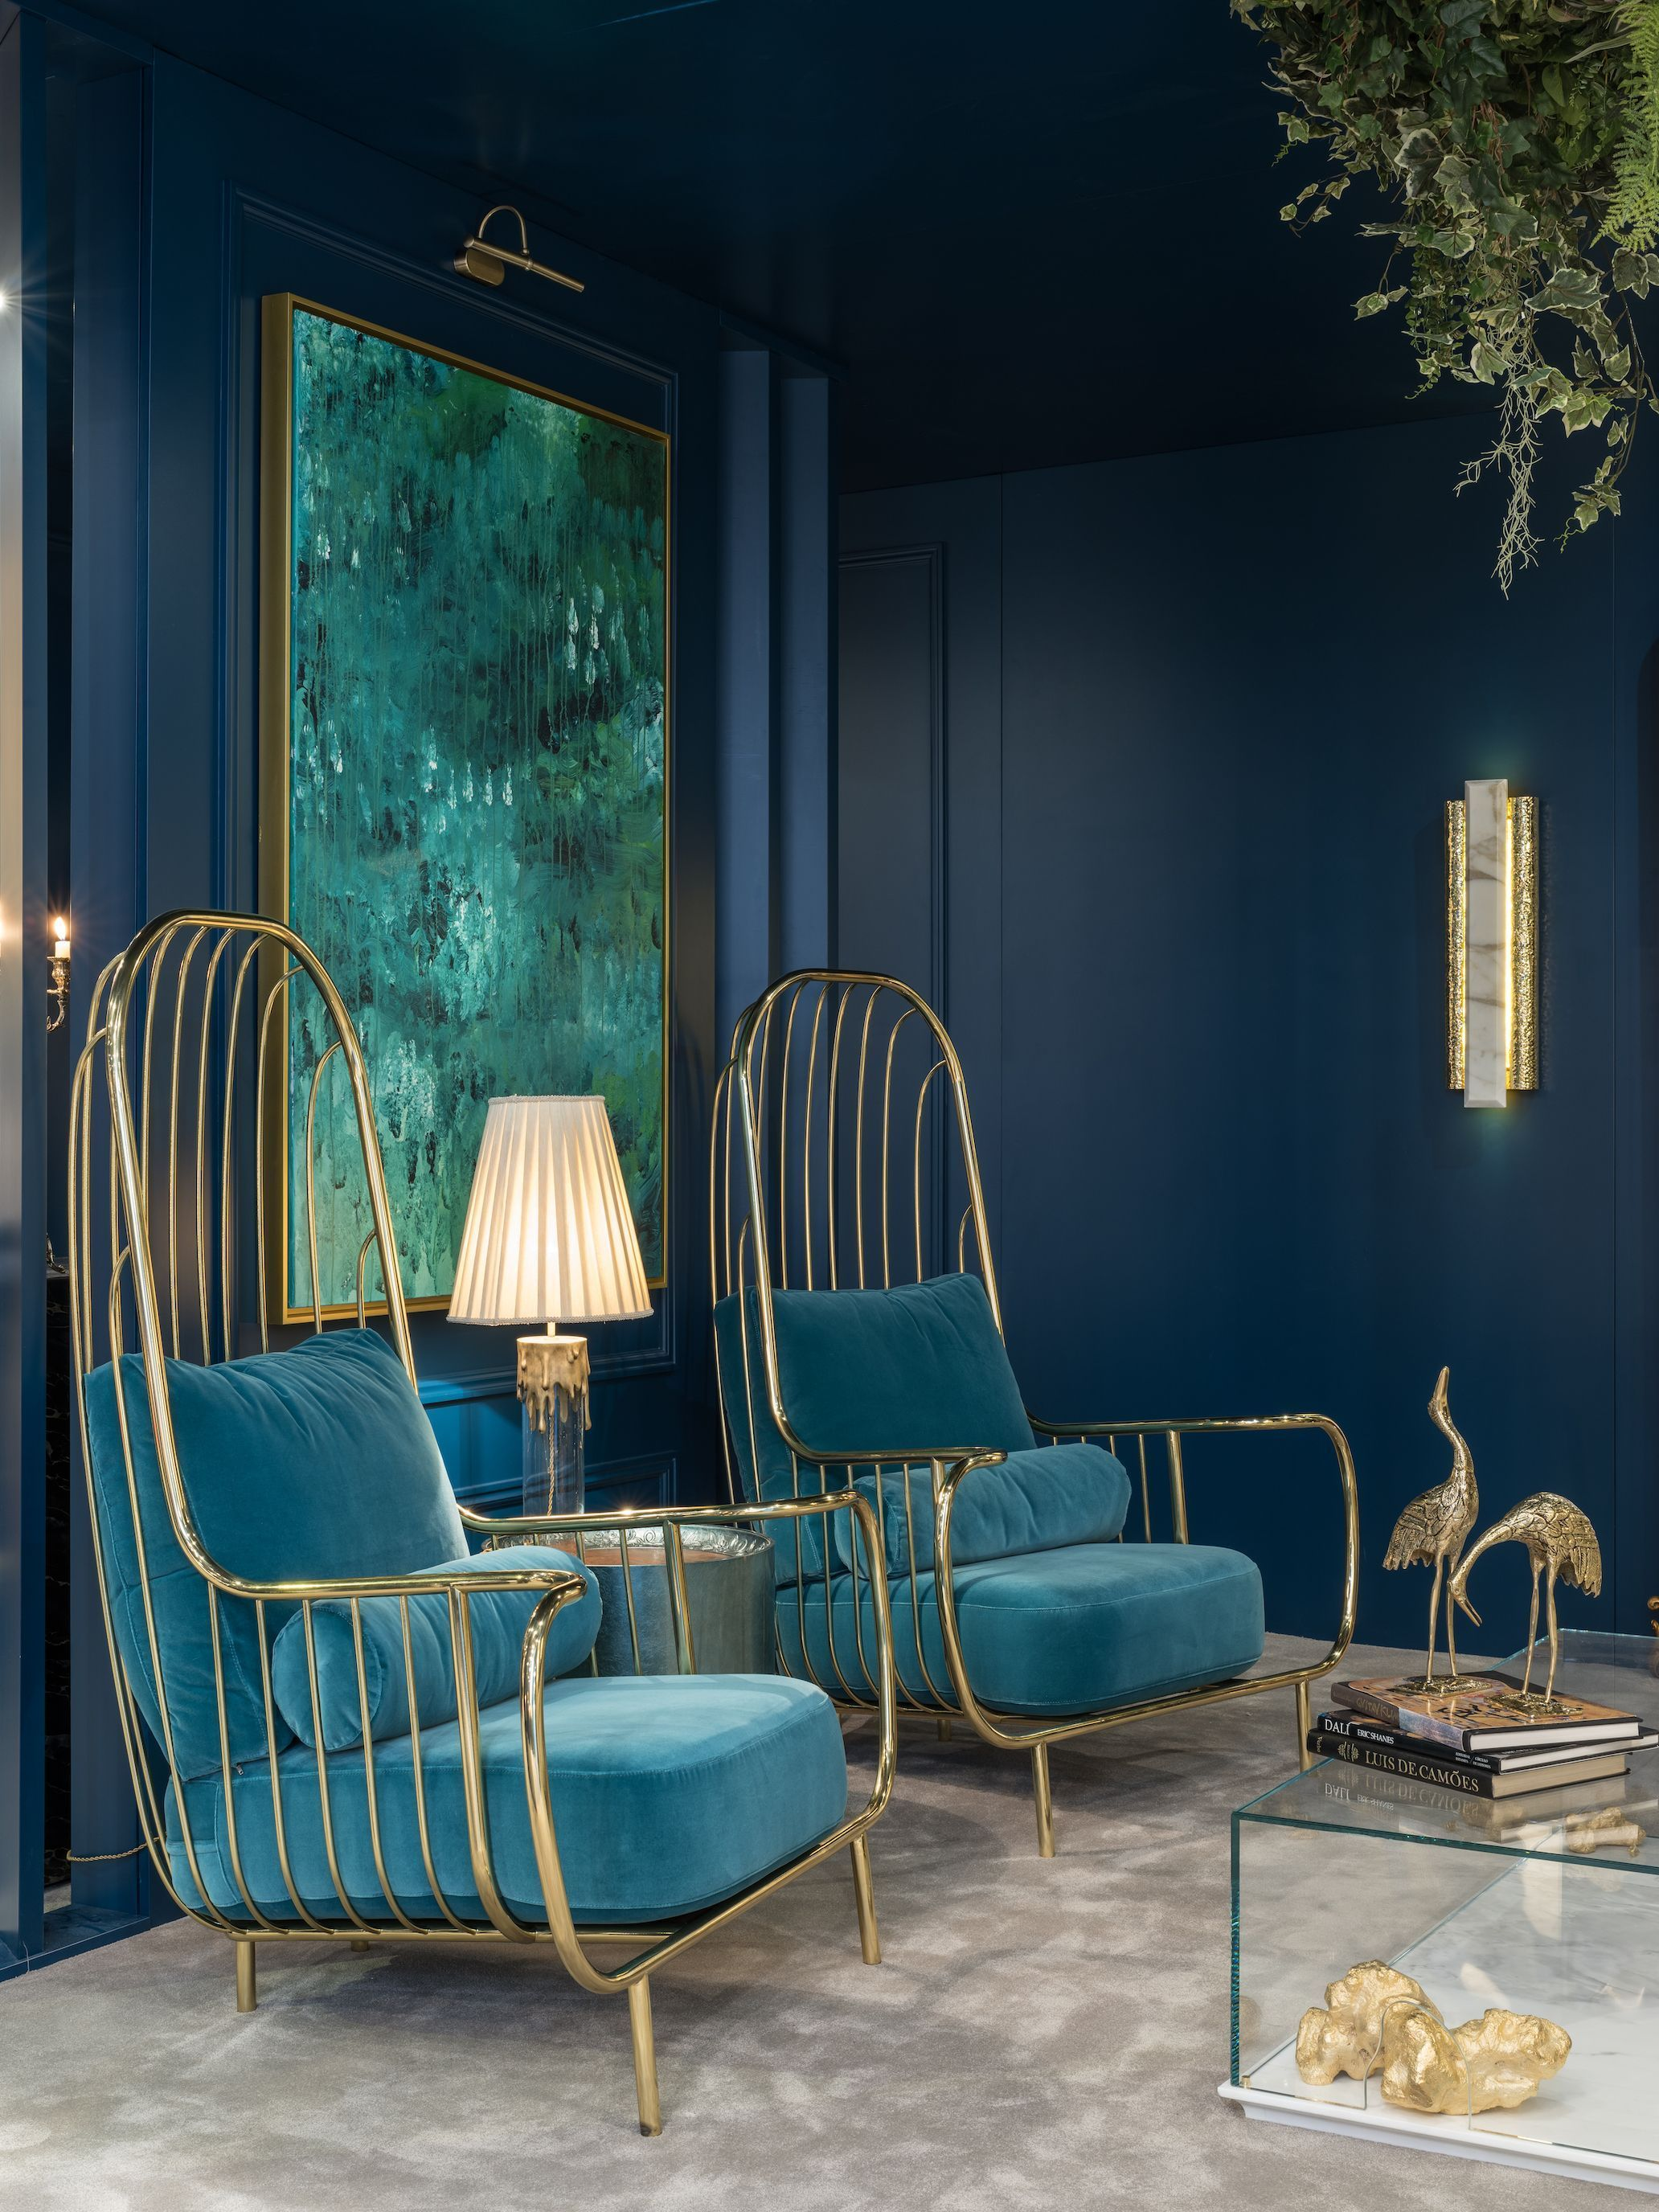 Maison Decor Tin Ceilings: Why You Need To Attend These Maison Et Objet Conferences